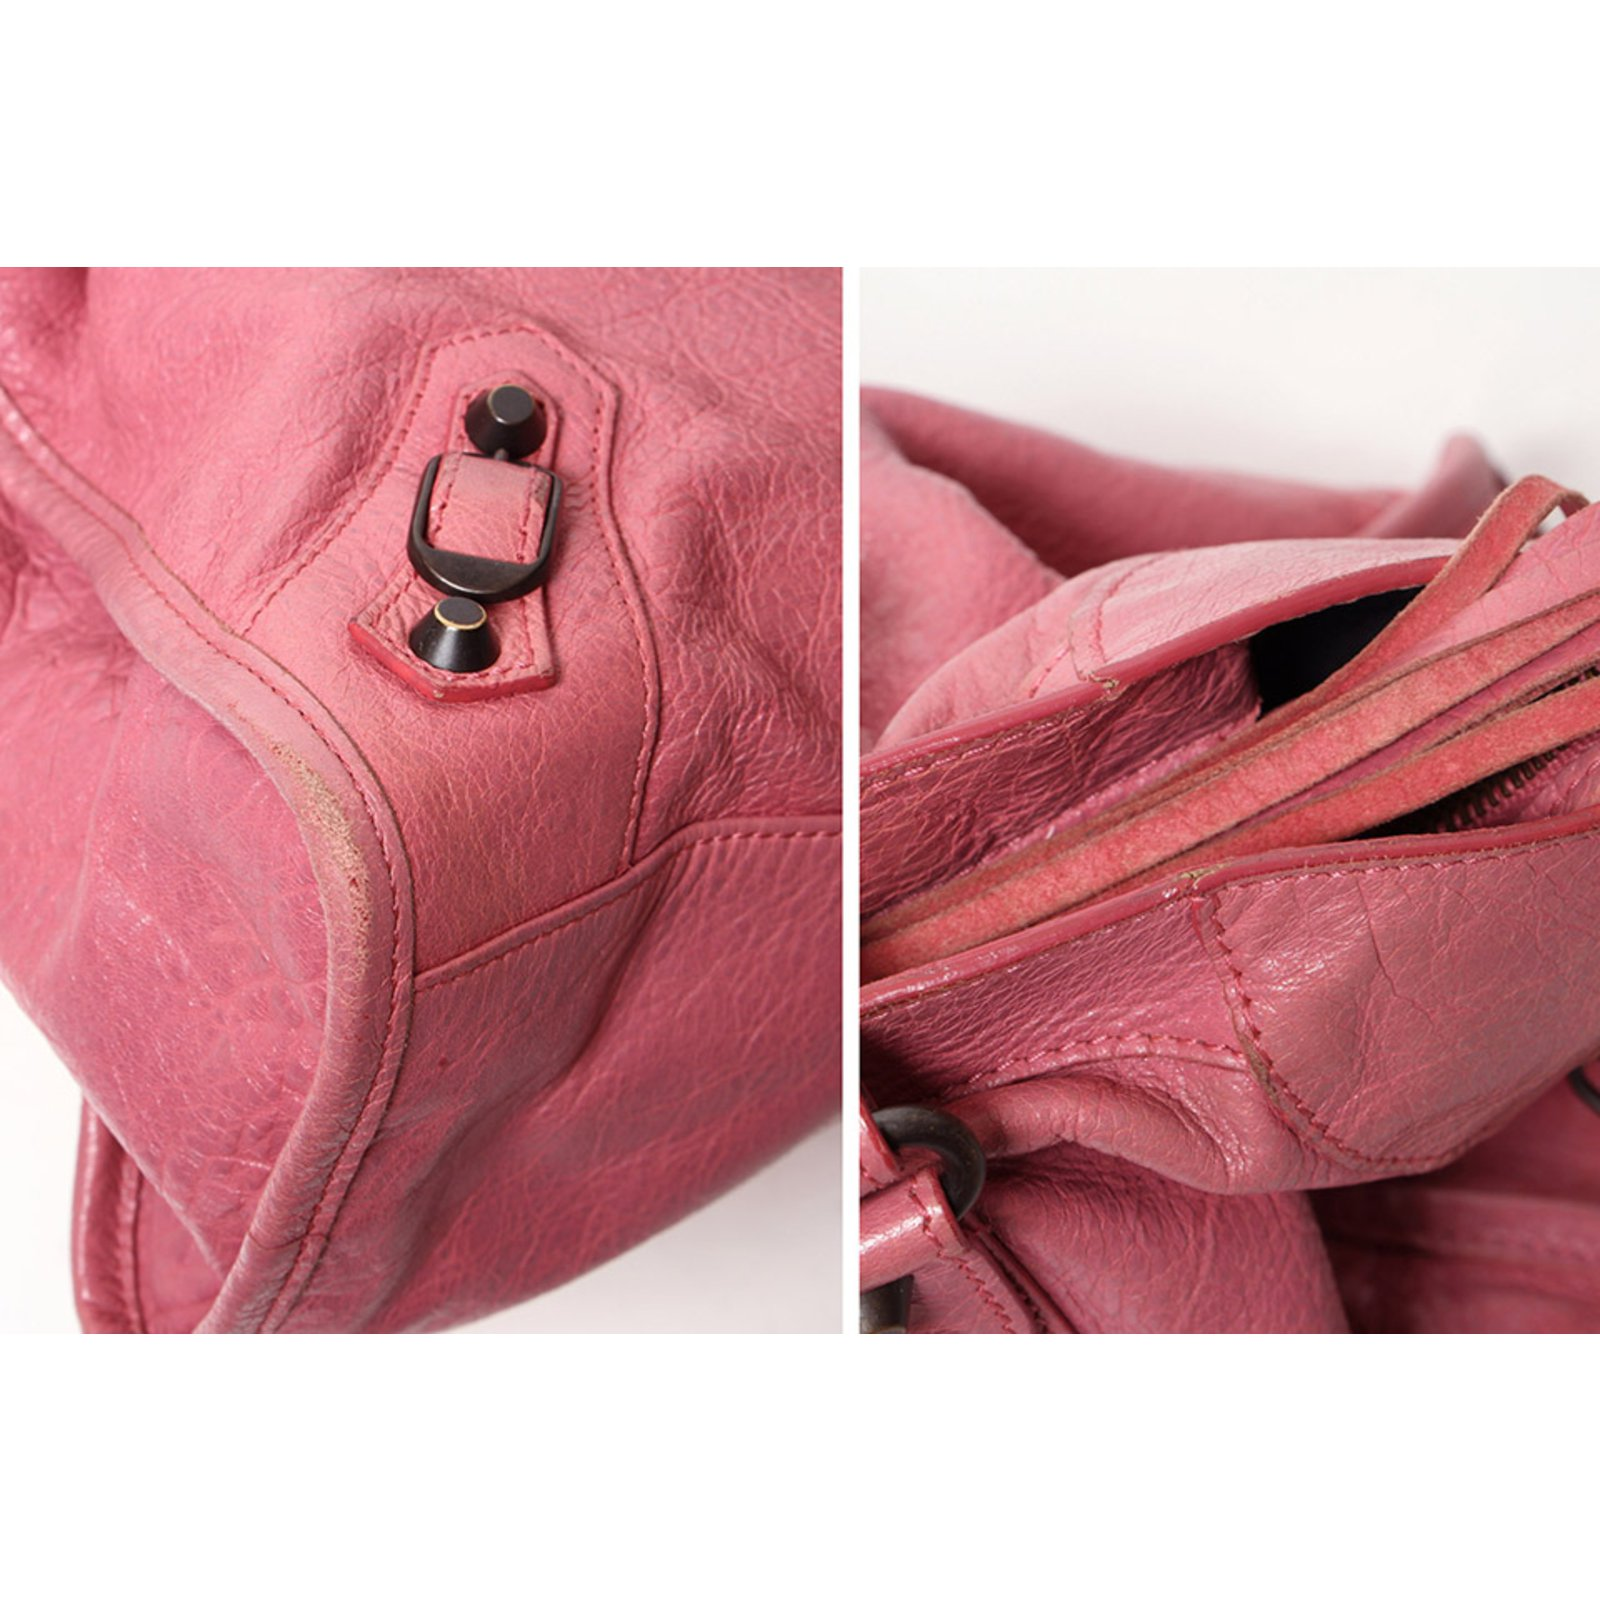 b8933a99806 Balenciaga Motocross Classic City Handbags Leather,Other Pink ref.99045 -  Joli Closet